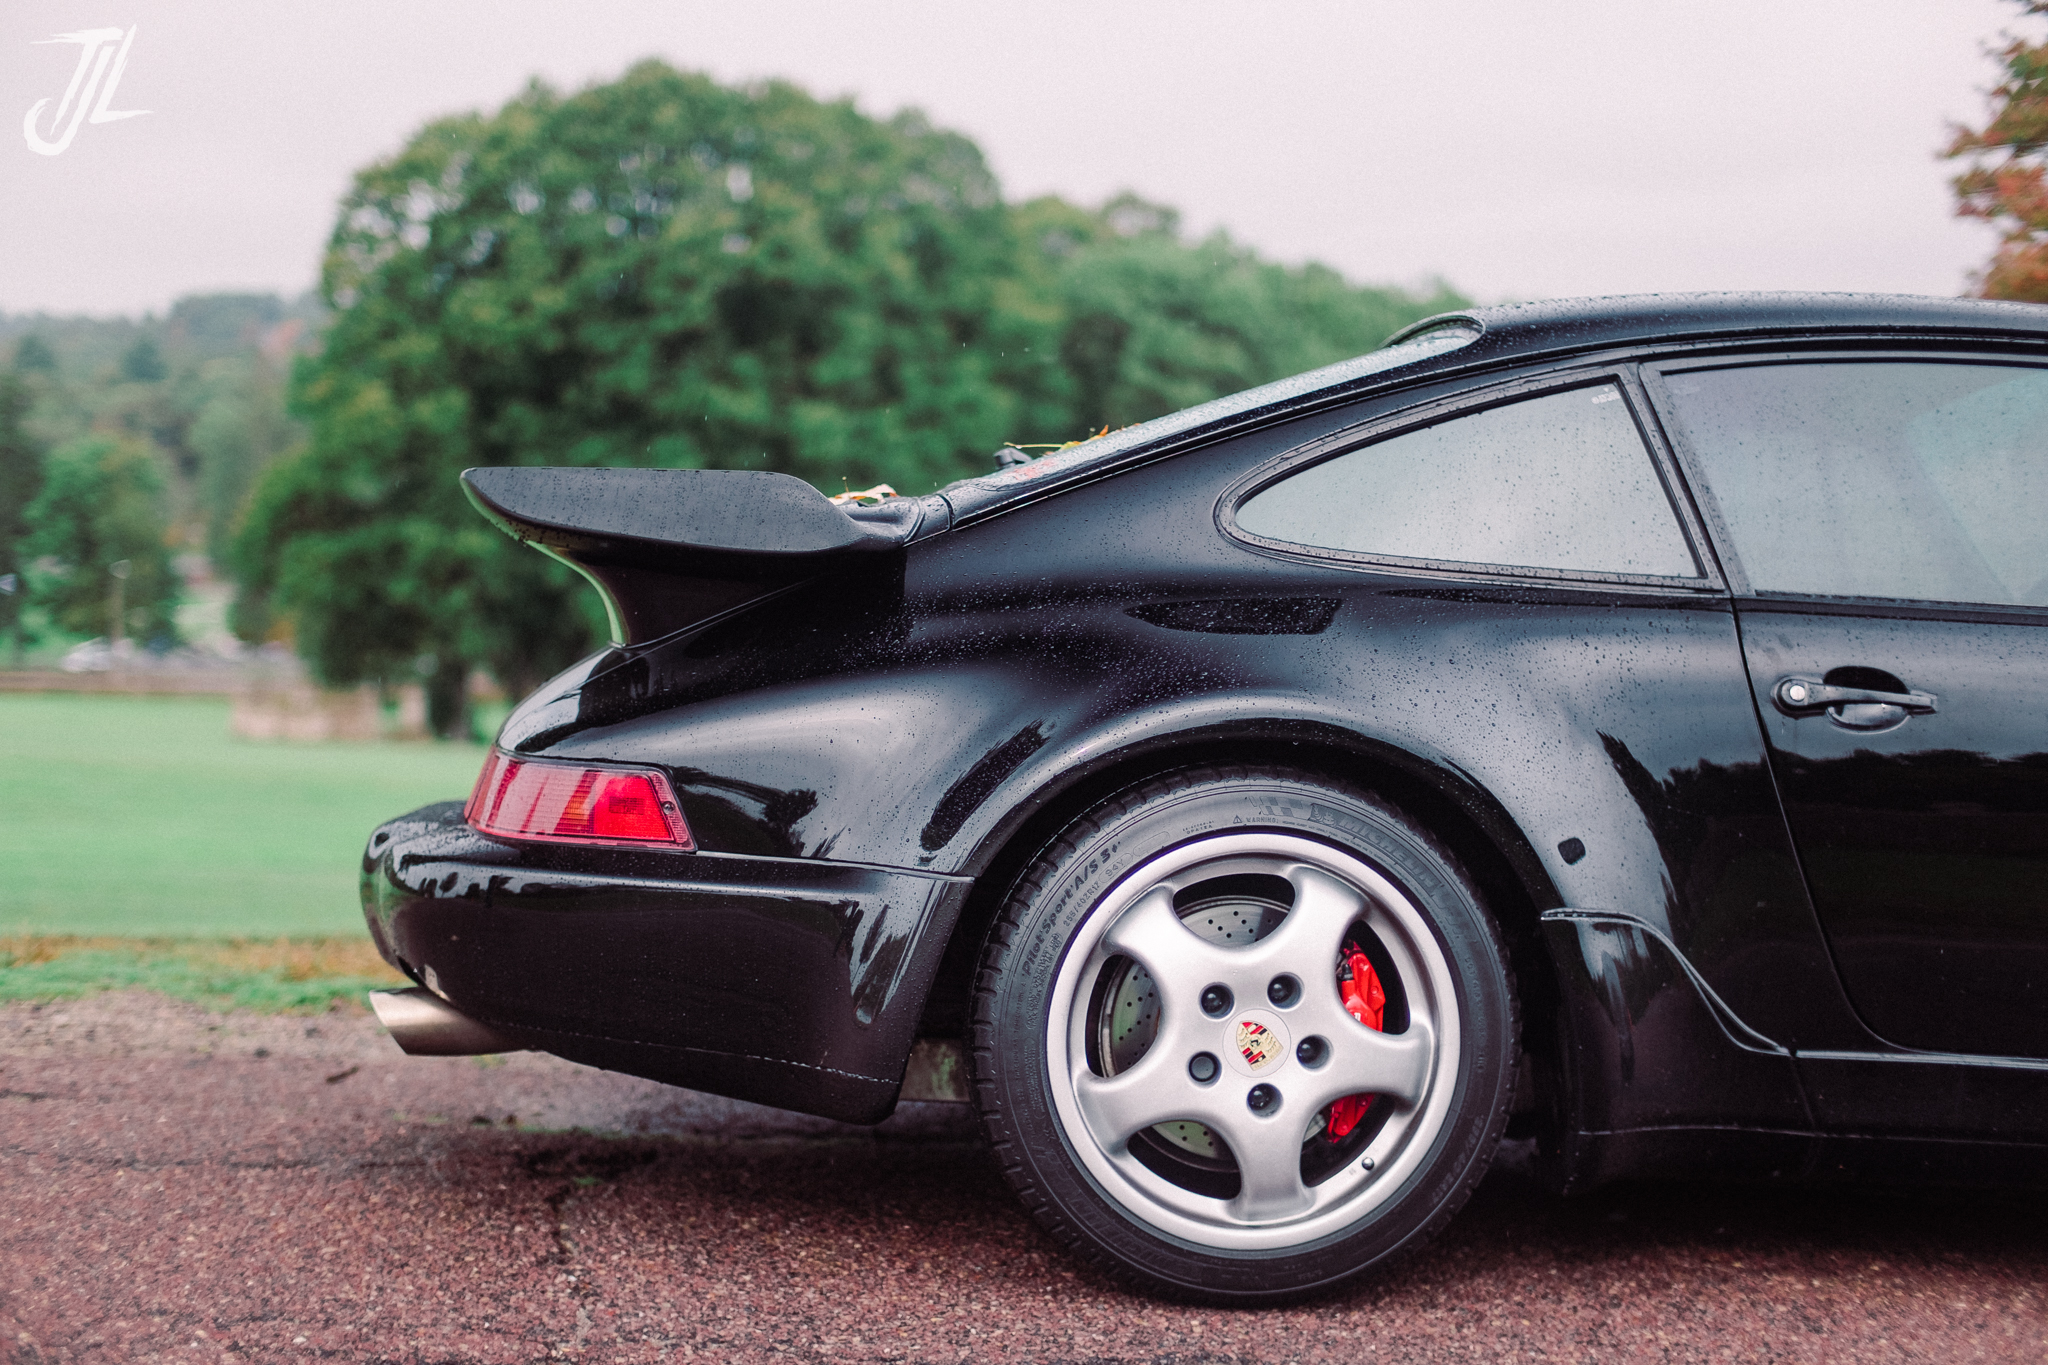 turbo964 compressed (10 of 17).jpg